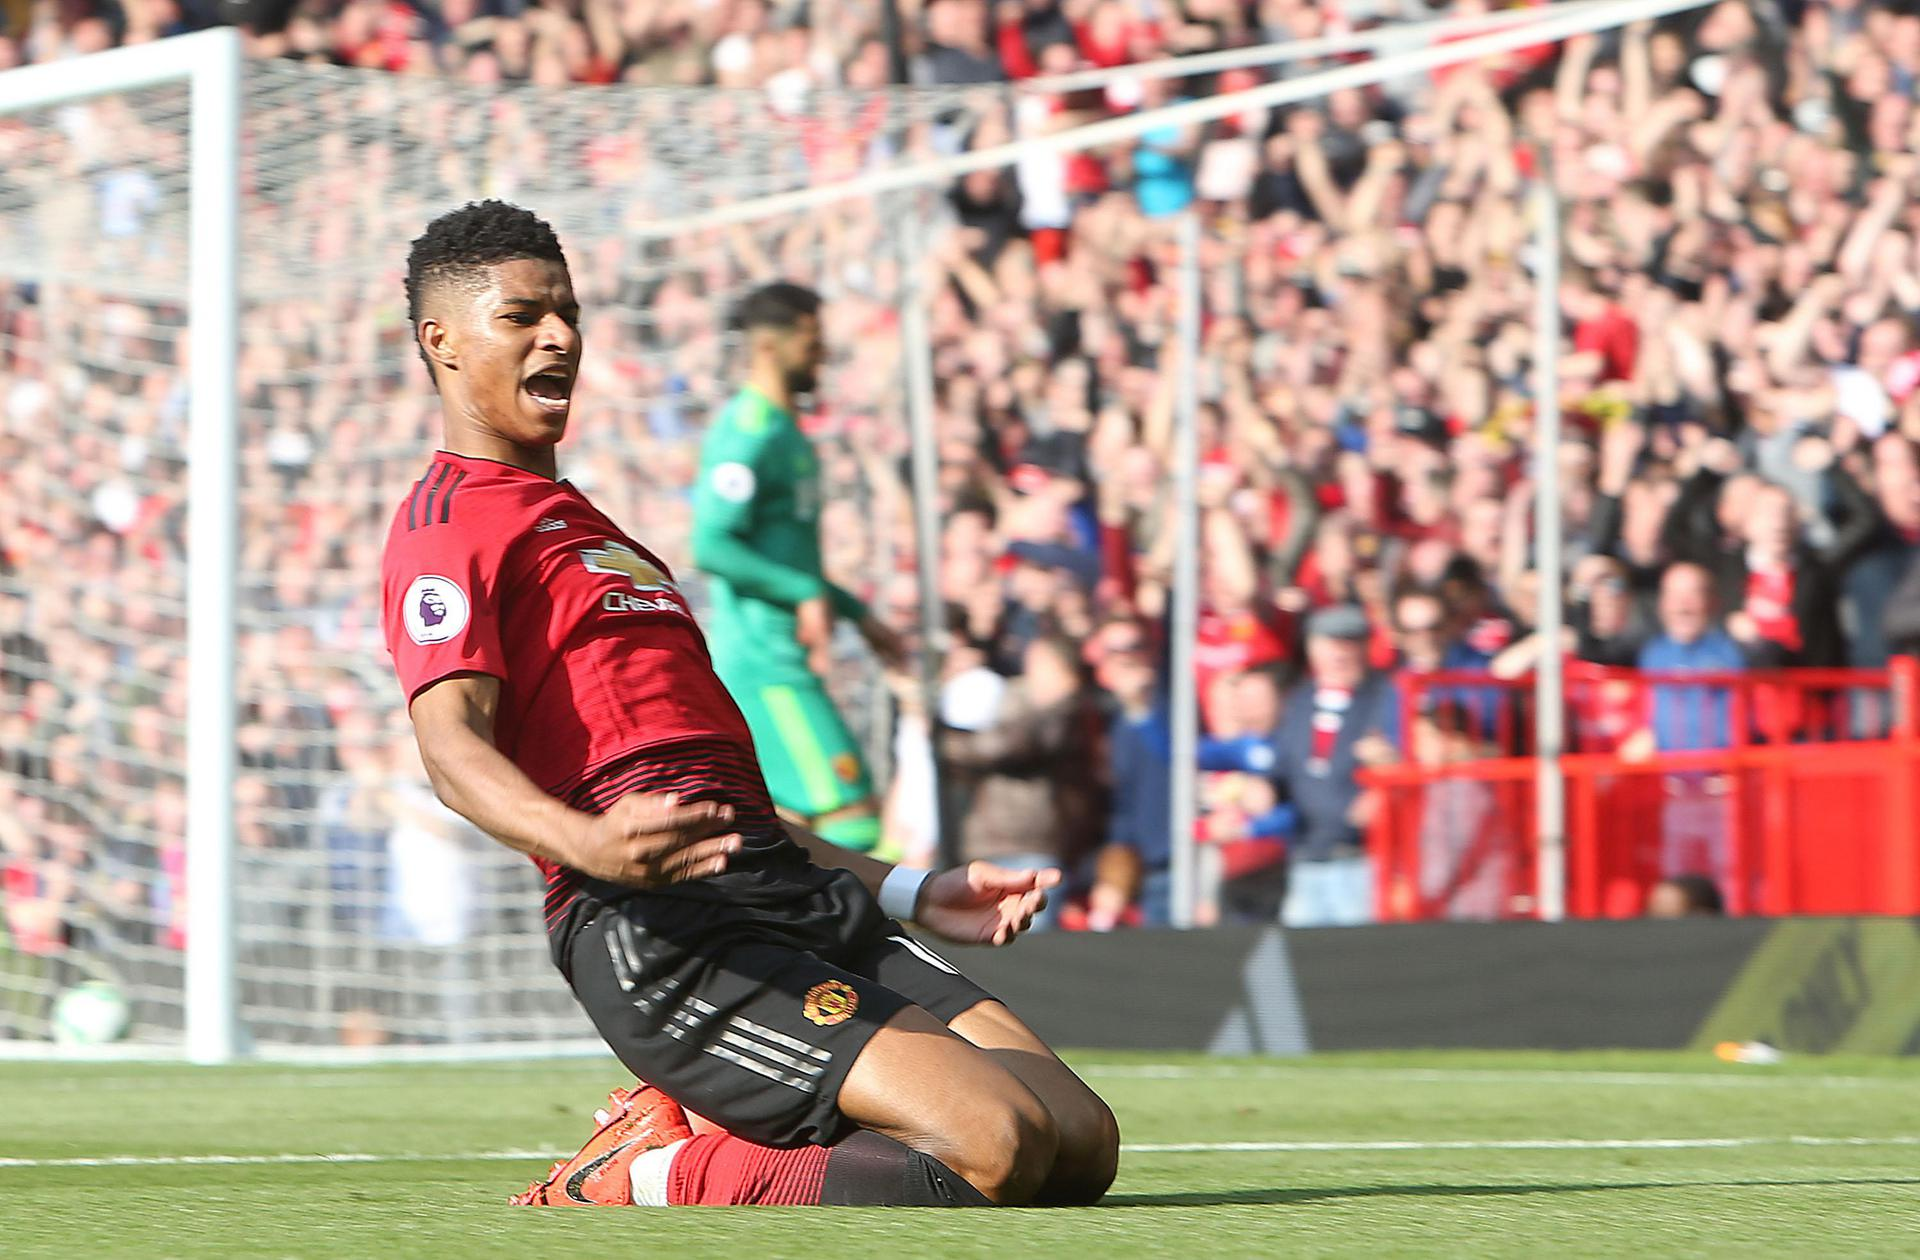 Marcus Rashford knee slide celebration.